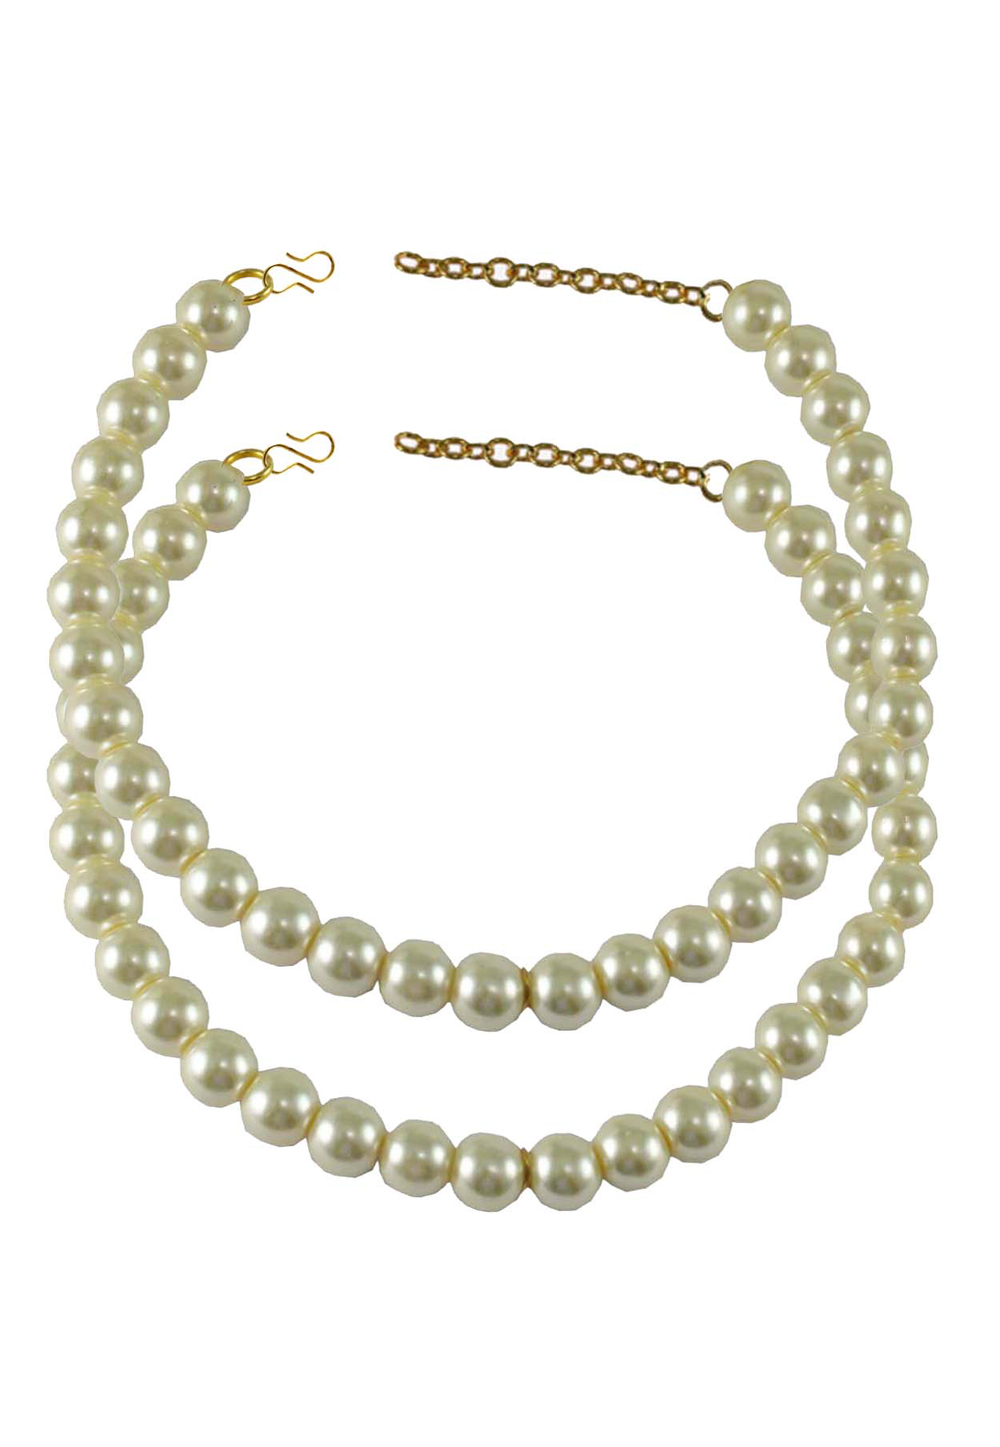 White Brass Gold Plated Anklets 171265